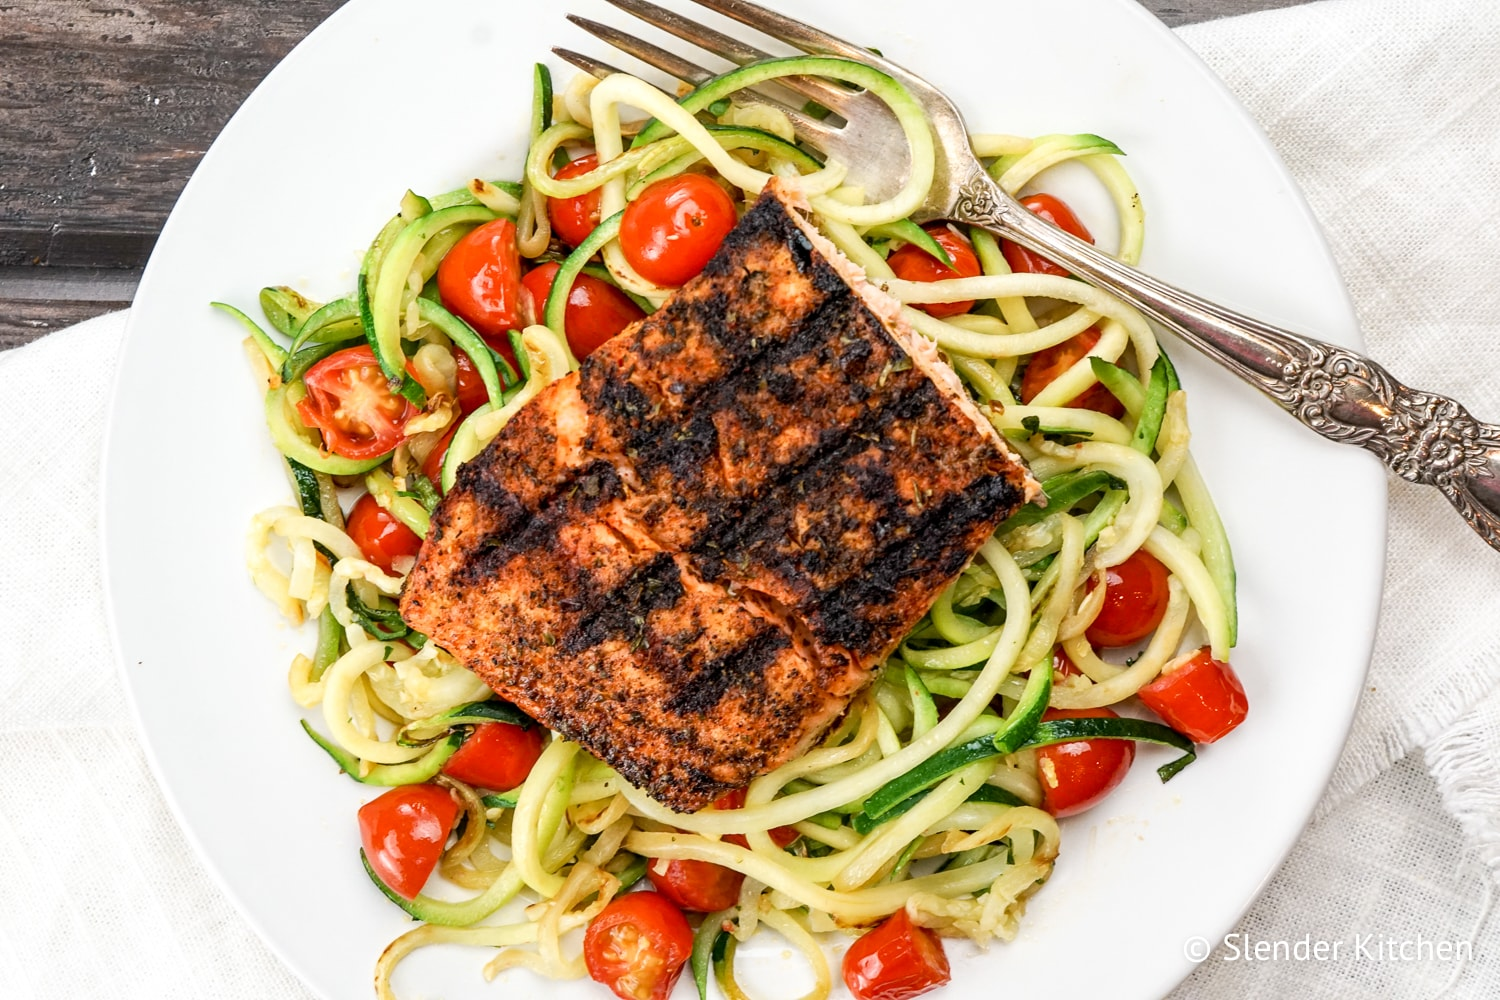 Pan fried salmon on a bed of zucchini noodles and a wooden table.